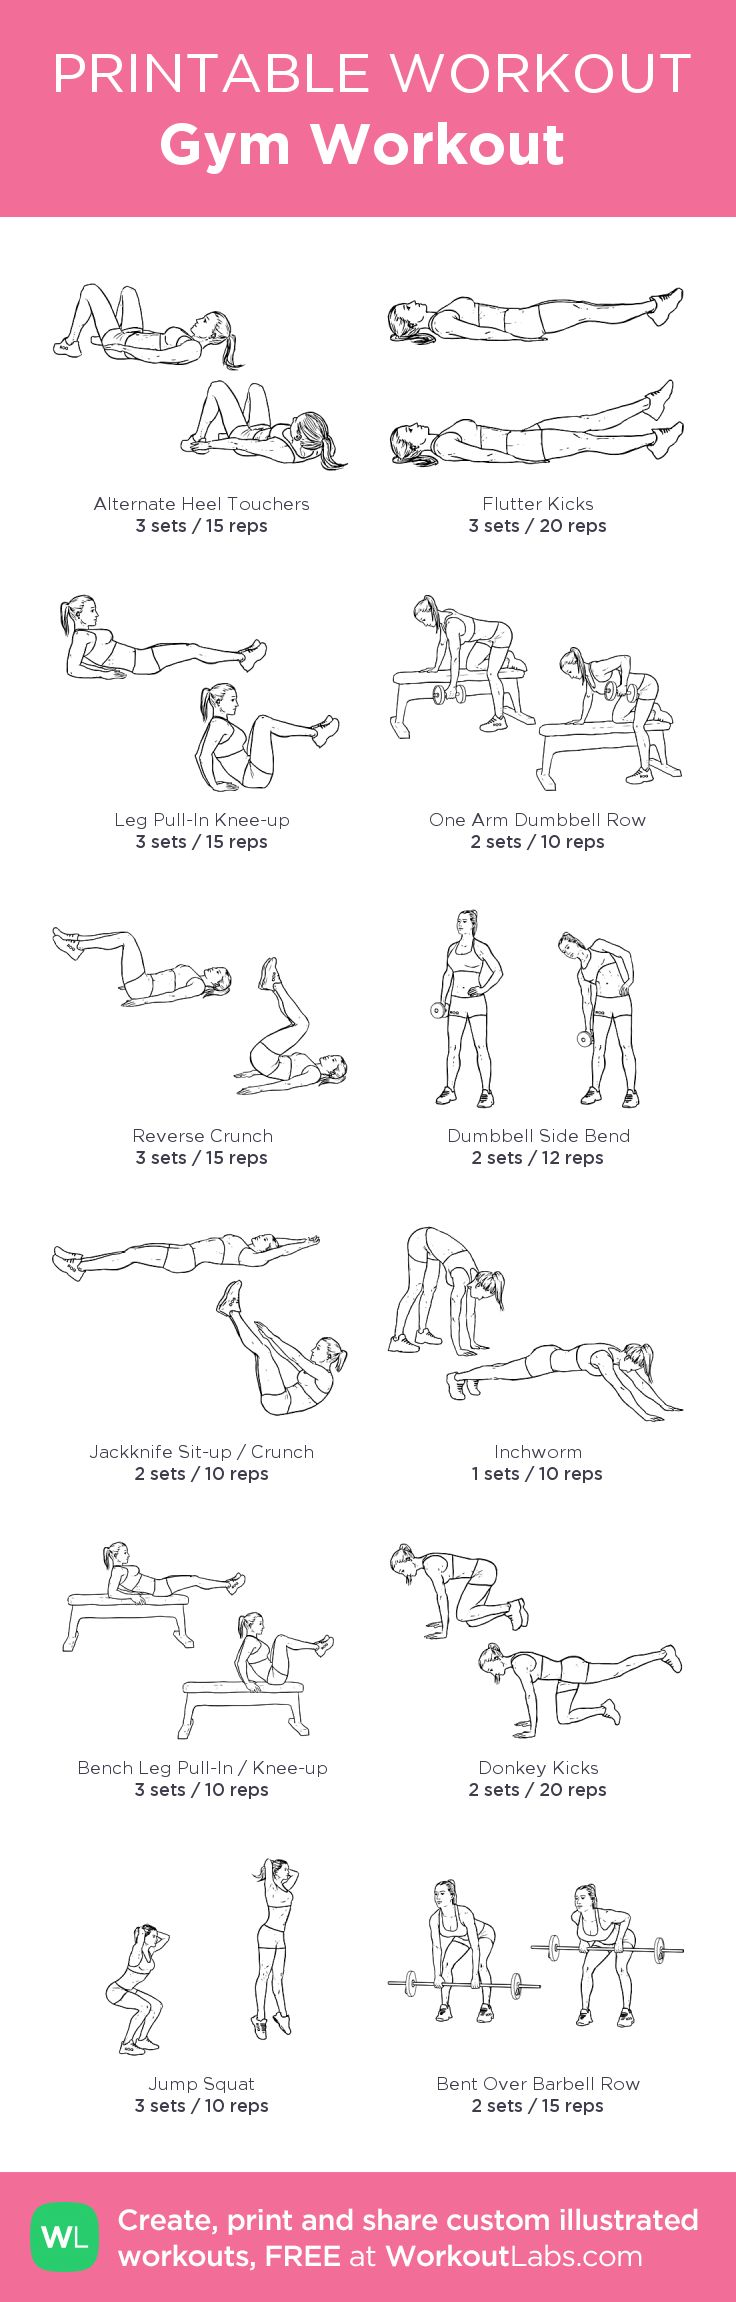 Gym Workout : my custom printable workout by @WorkoutLabs #workoutlabs #customworkout